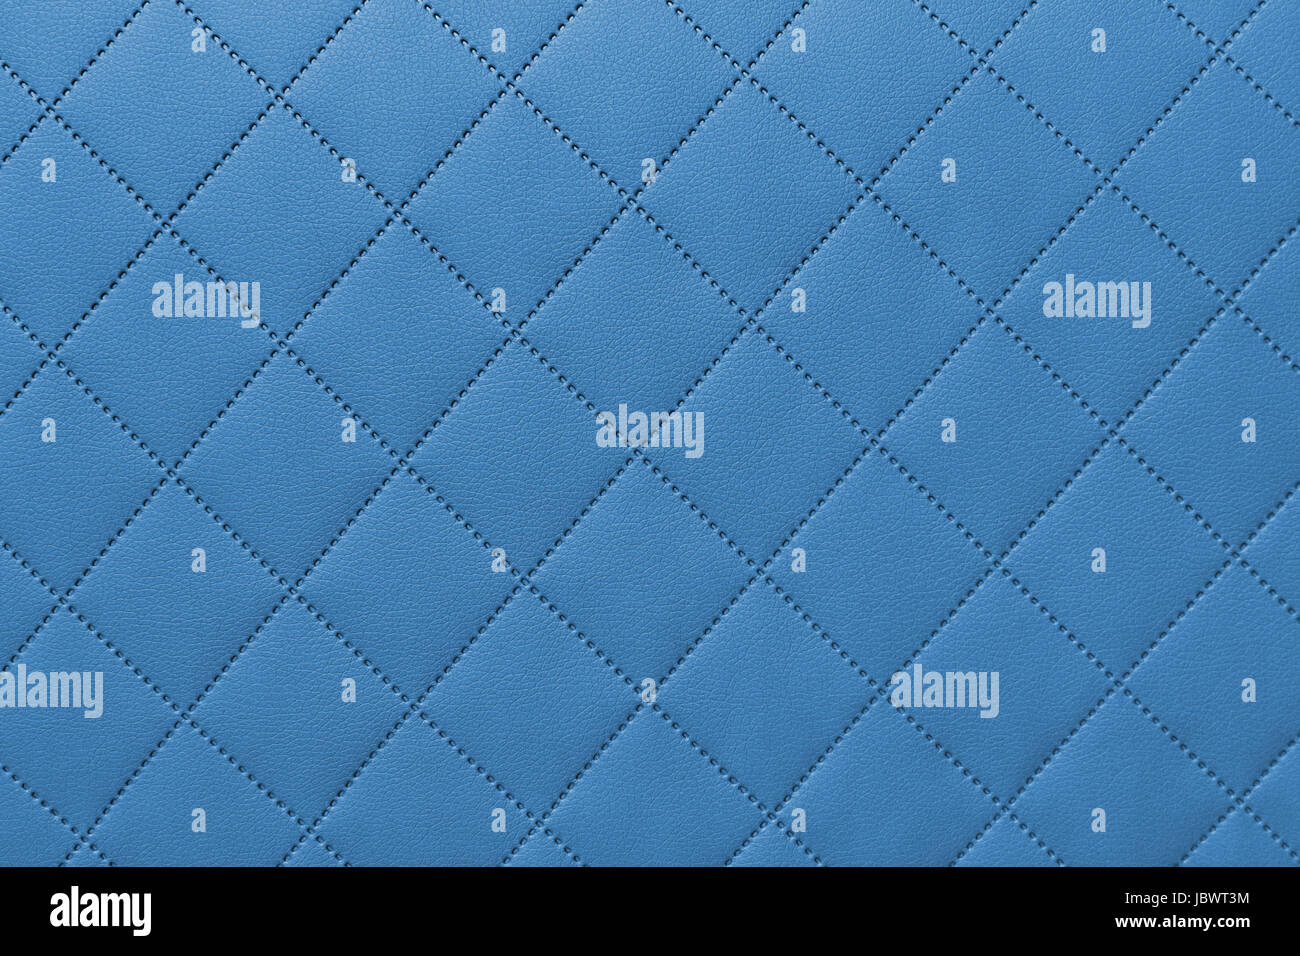 detail of sewn leather, blue leather upholstery background pattern - Stock Image